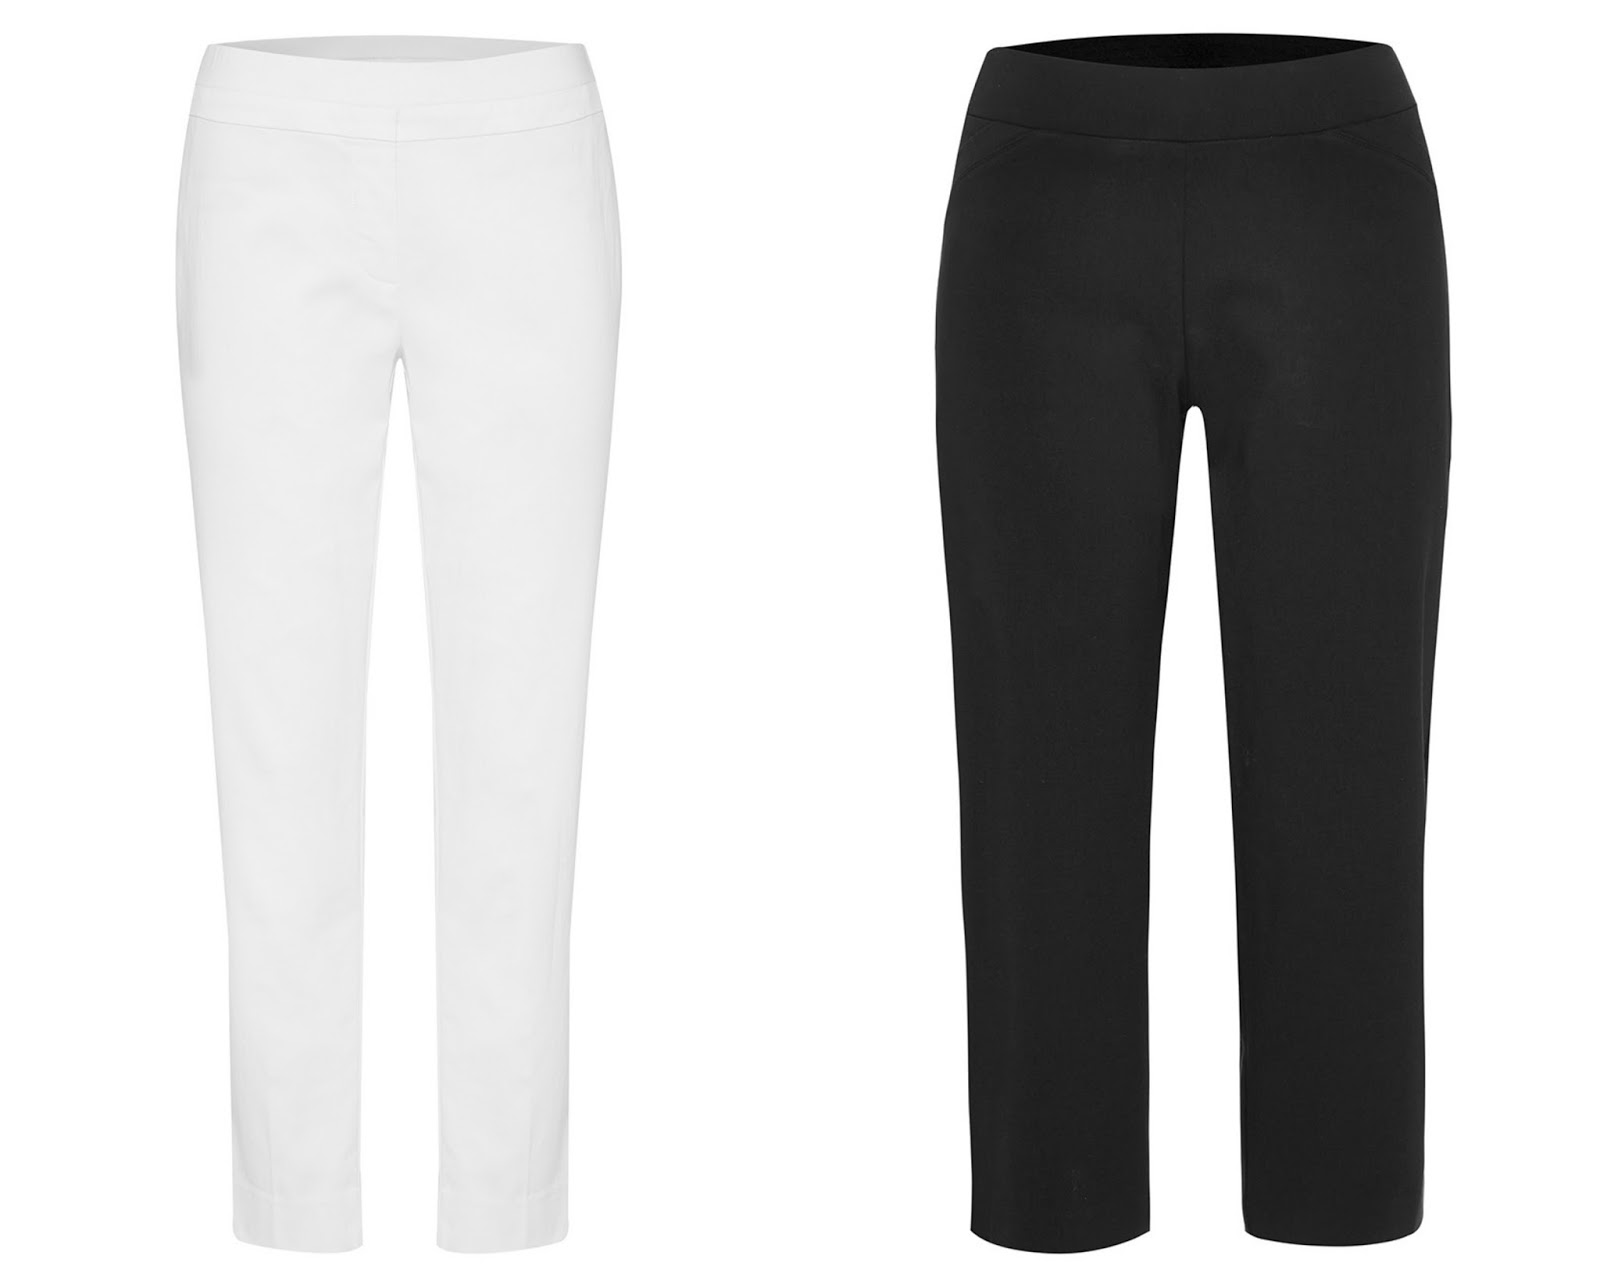 9165e3349259 Deep Fried Fruit  Day 2310 - Suzanne Grae Microtwill Pants currently 30%  off - Product Review